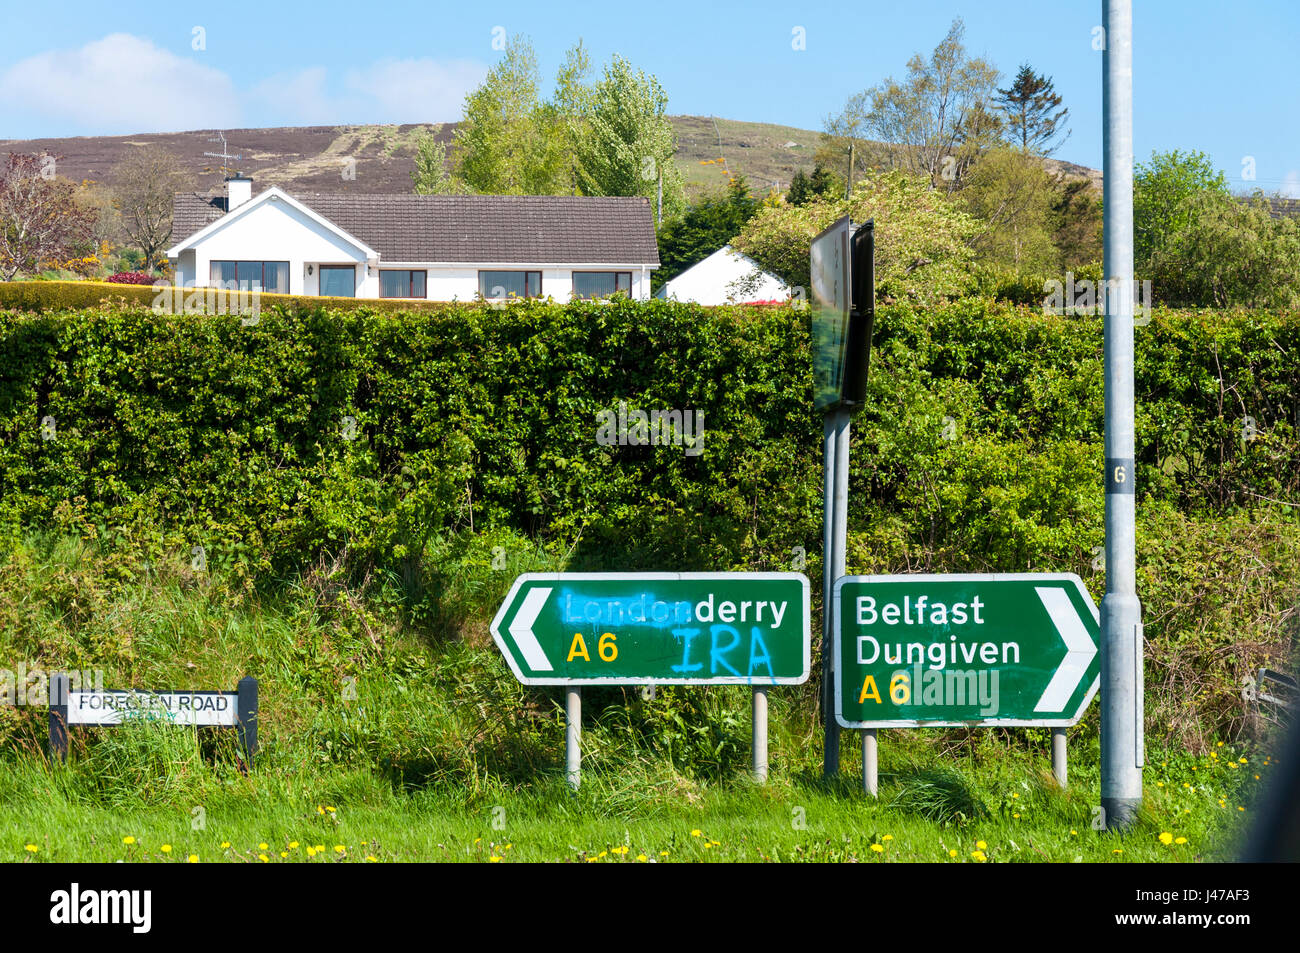 Defaced road sign near Claudy in County Londonderry, Northern Ireland UK. - Stock Image